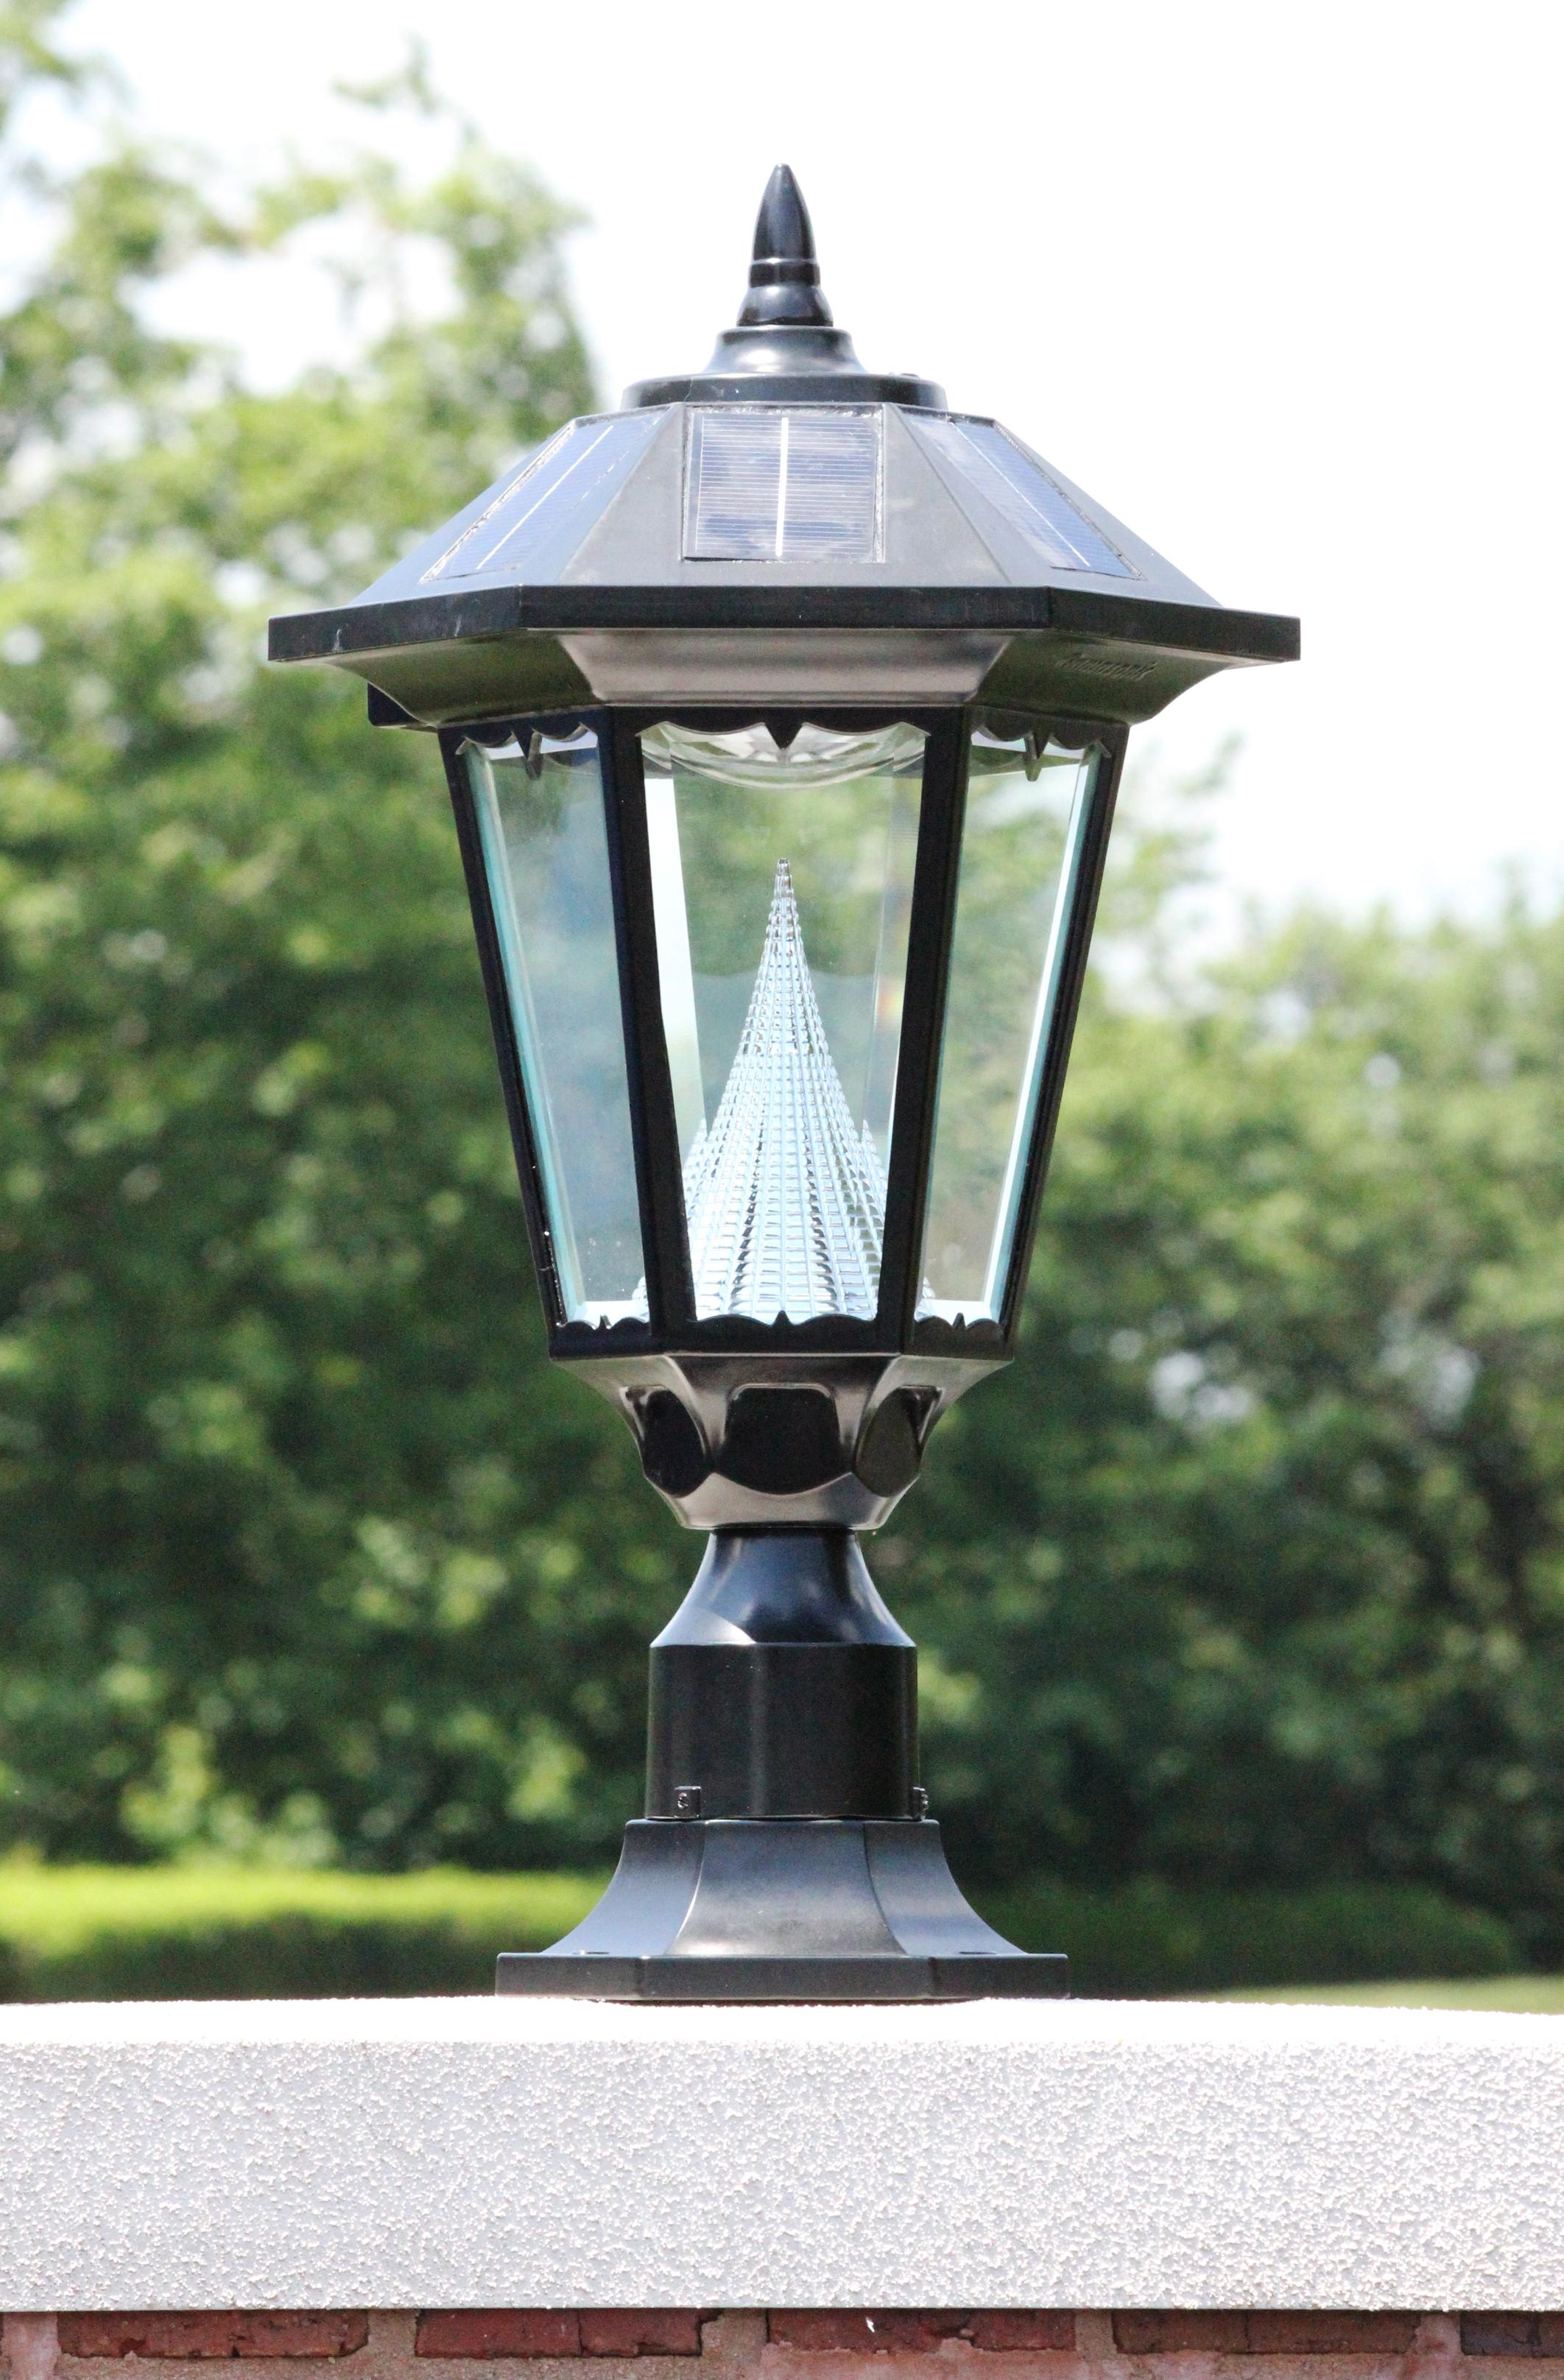 Commercial Yard Outdoor Lamp Post Lights Fixtures Led Post ...  |Commercial Outdoor Post Light Fixtures